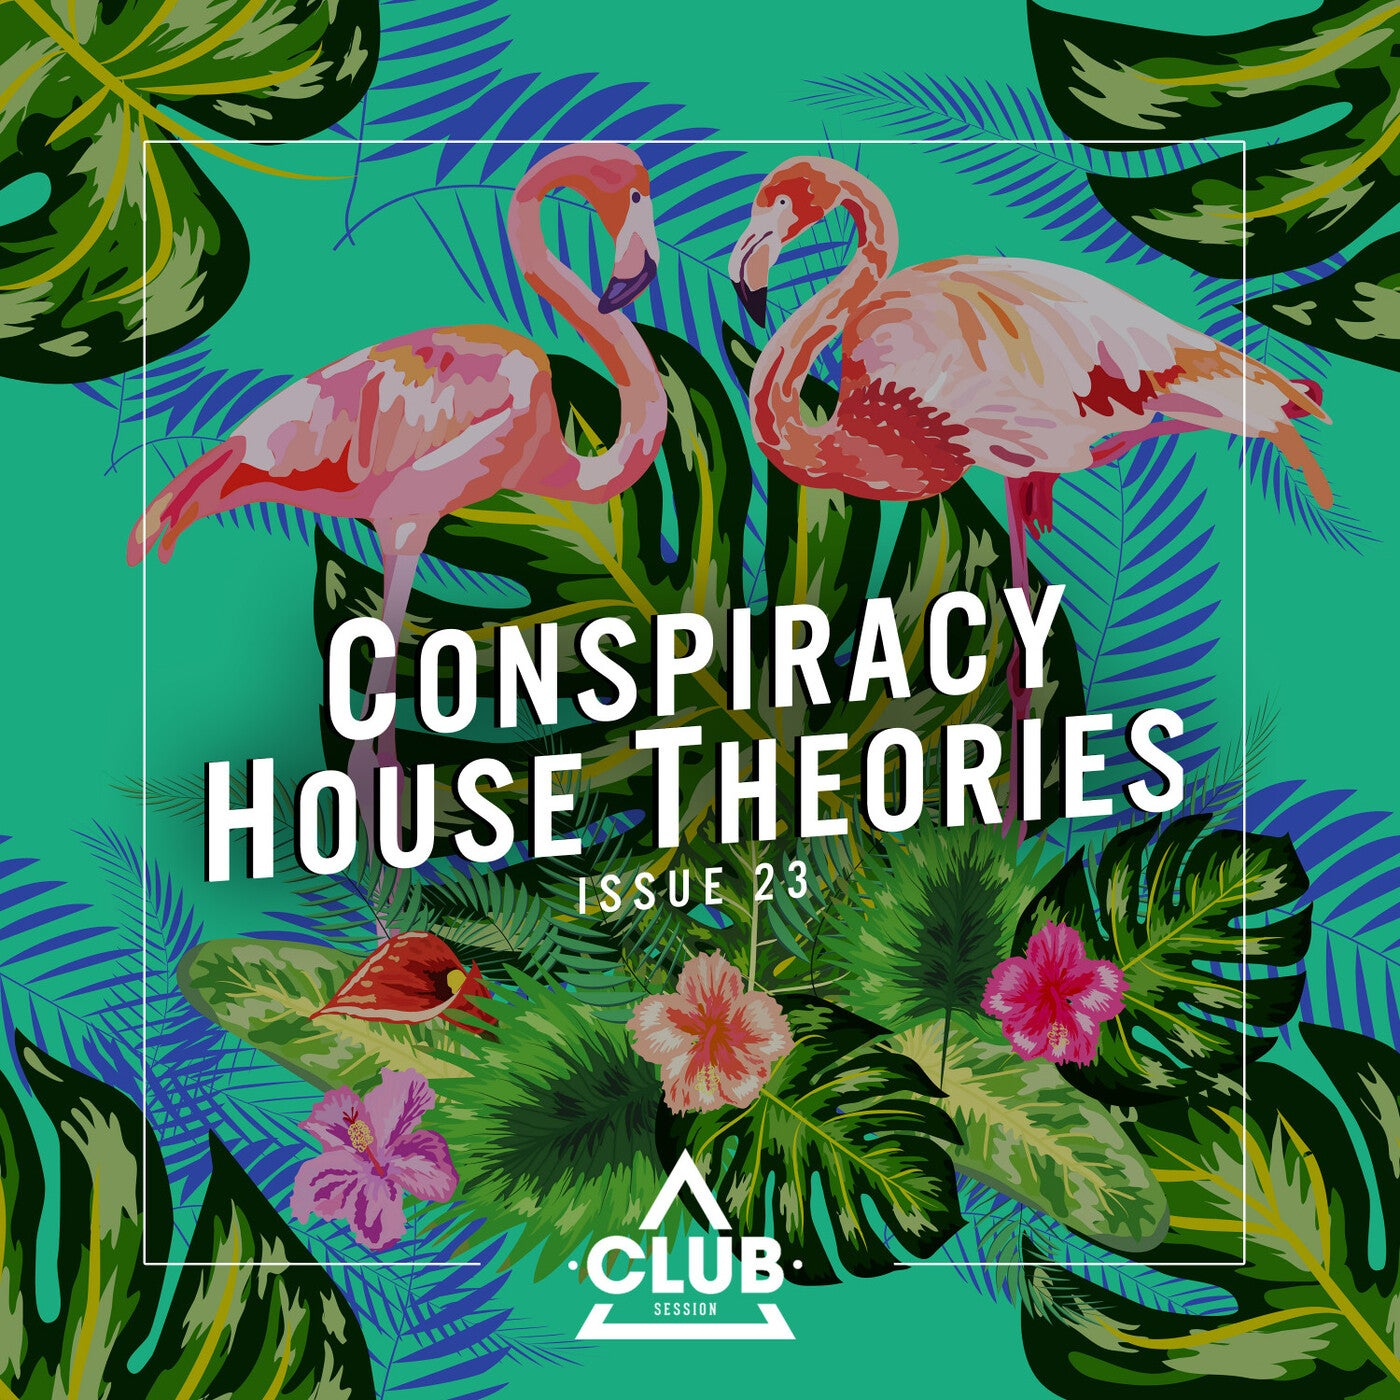 Conspiracy House Theories, Issue 23